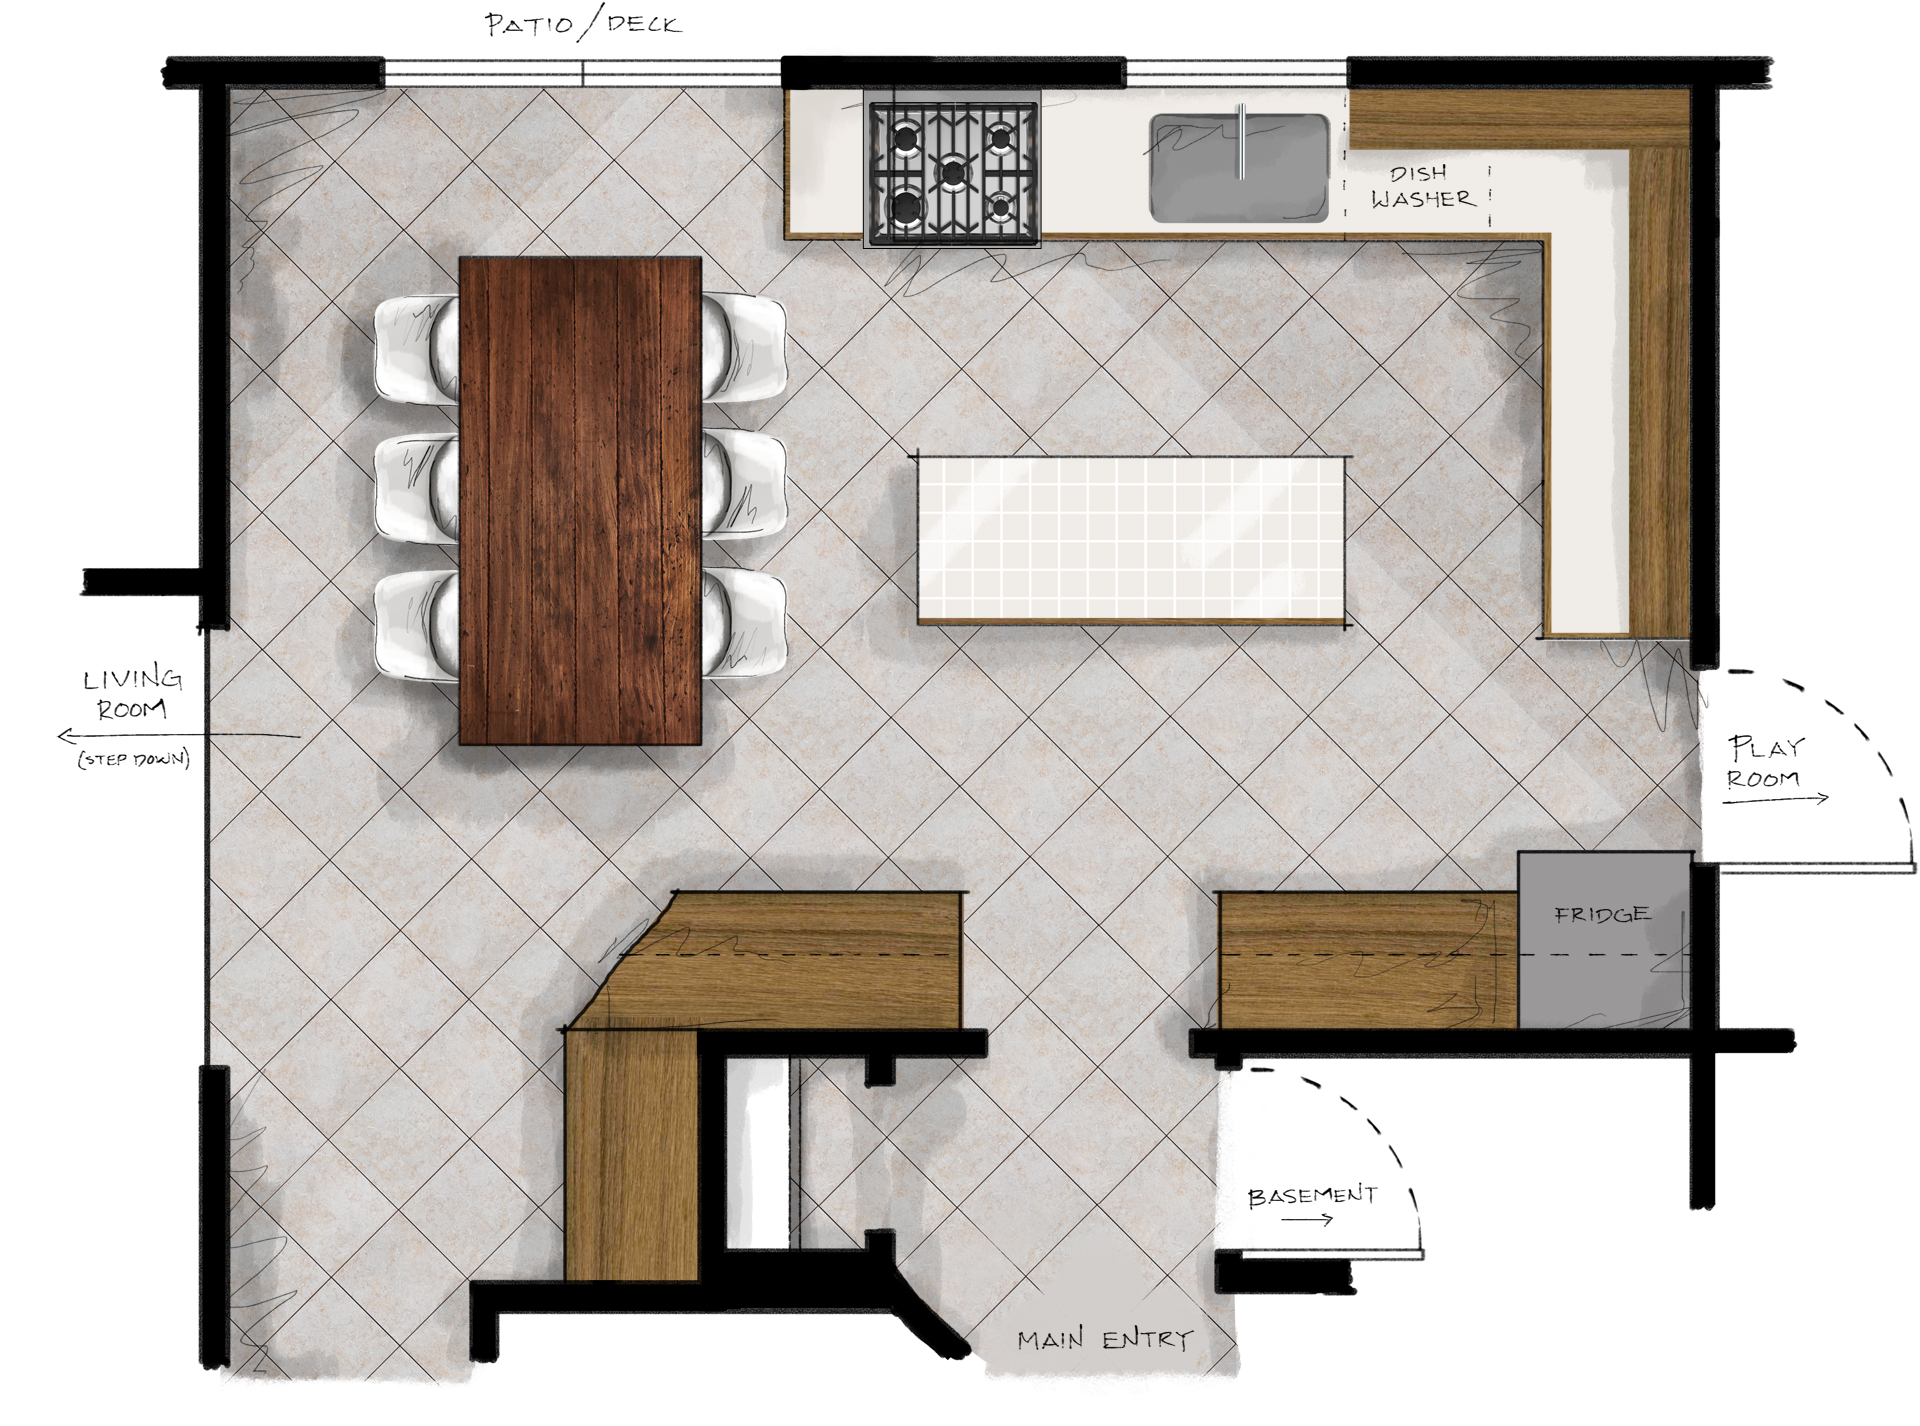 Kitchen Before - Plan View